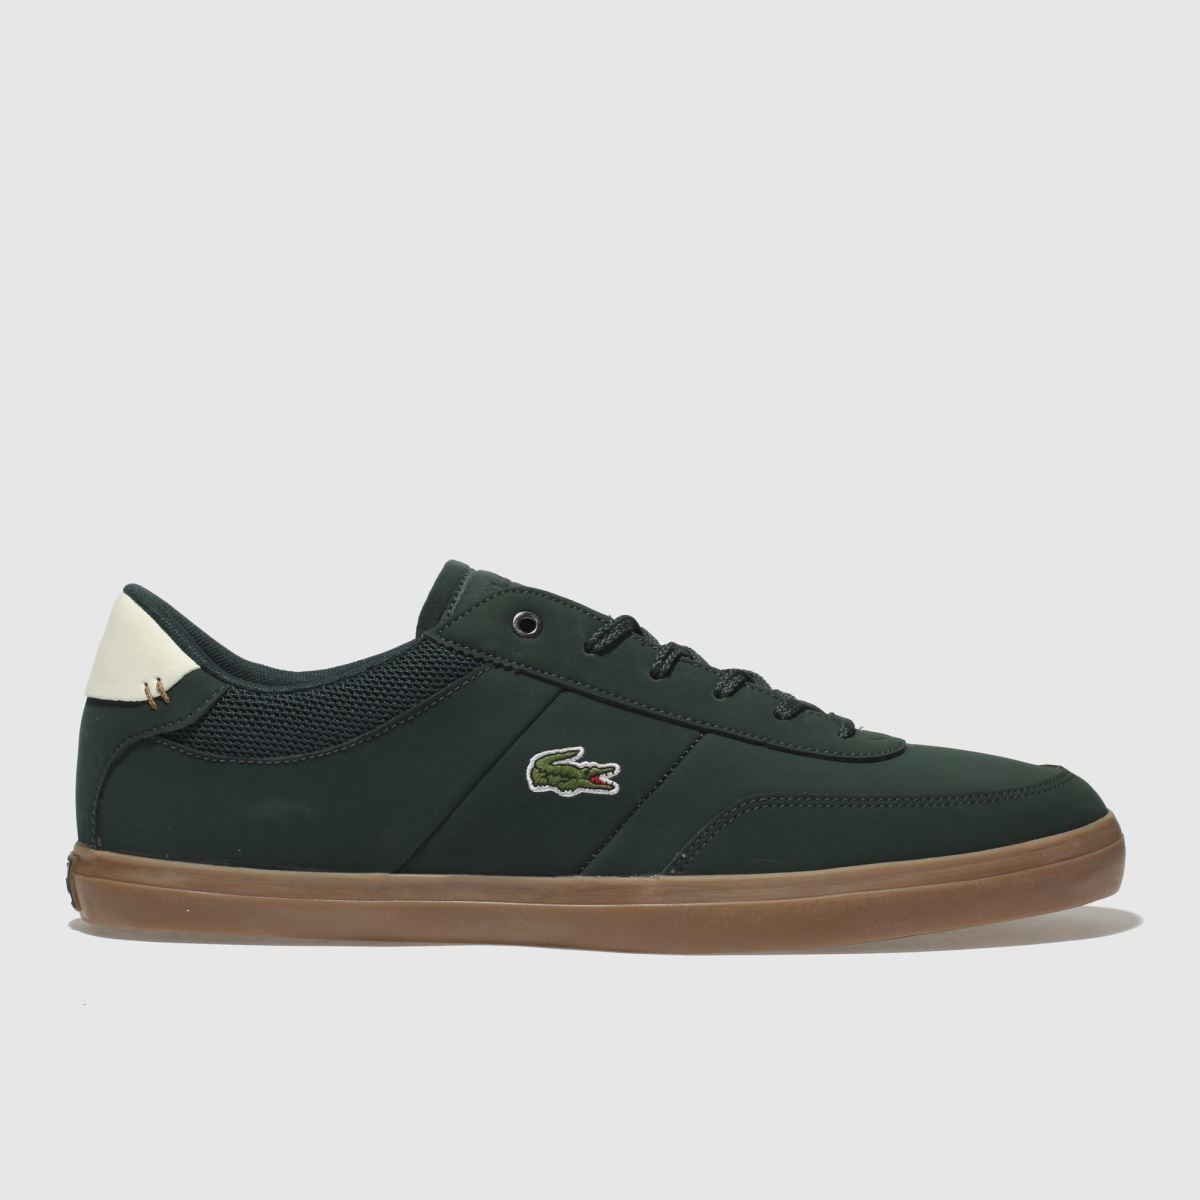 Lacoste Green Court-master Trainers